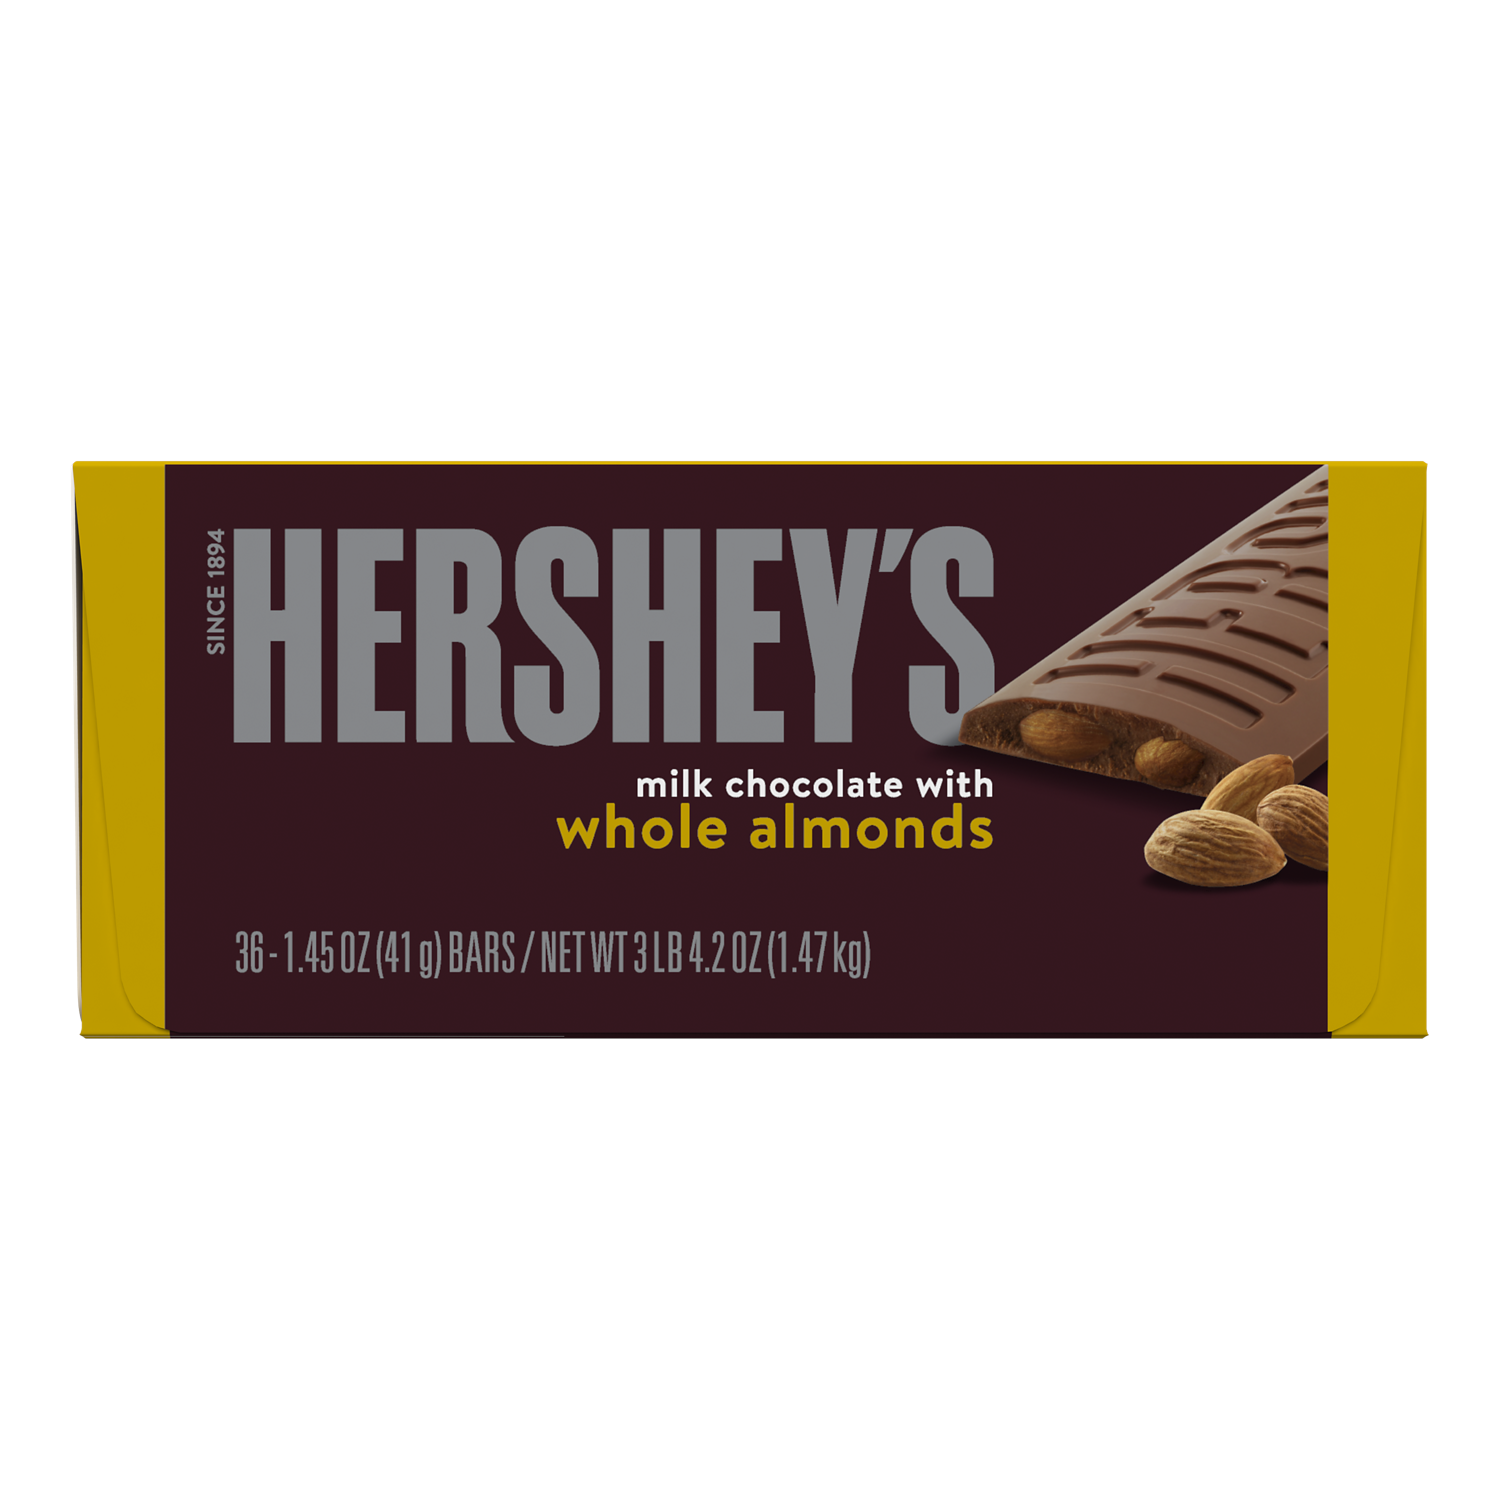 HERSHEY'S Milk Chocolate with Almonds Candy Bars, 52.2 oz box, 36 pack - Front of Package